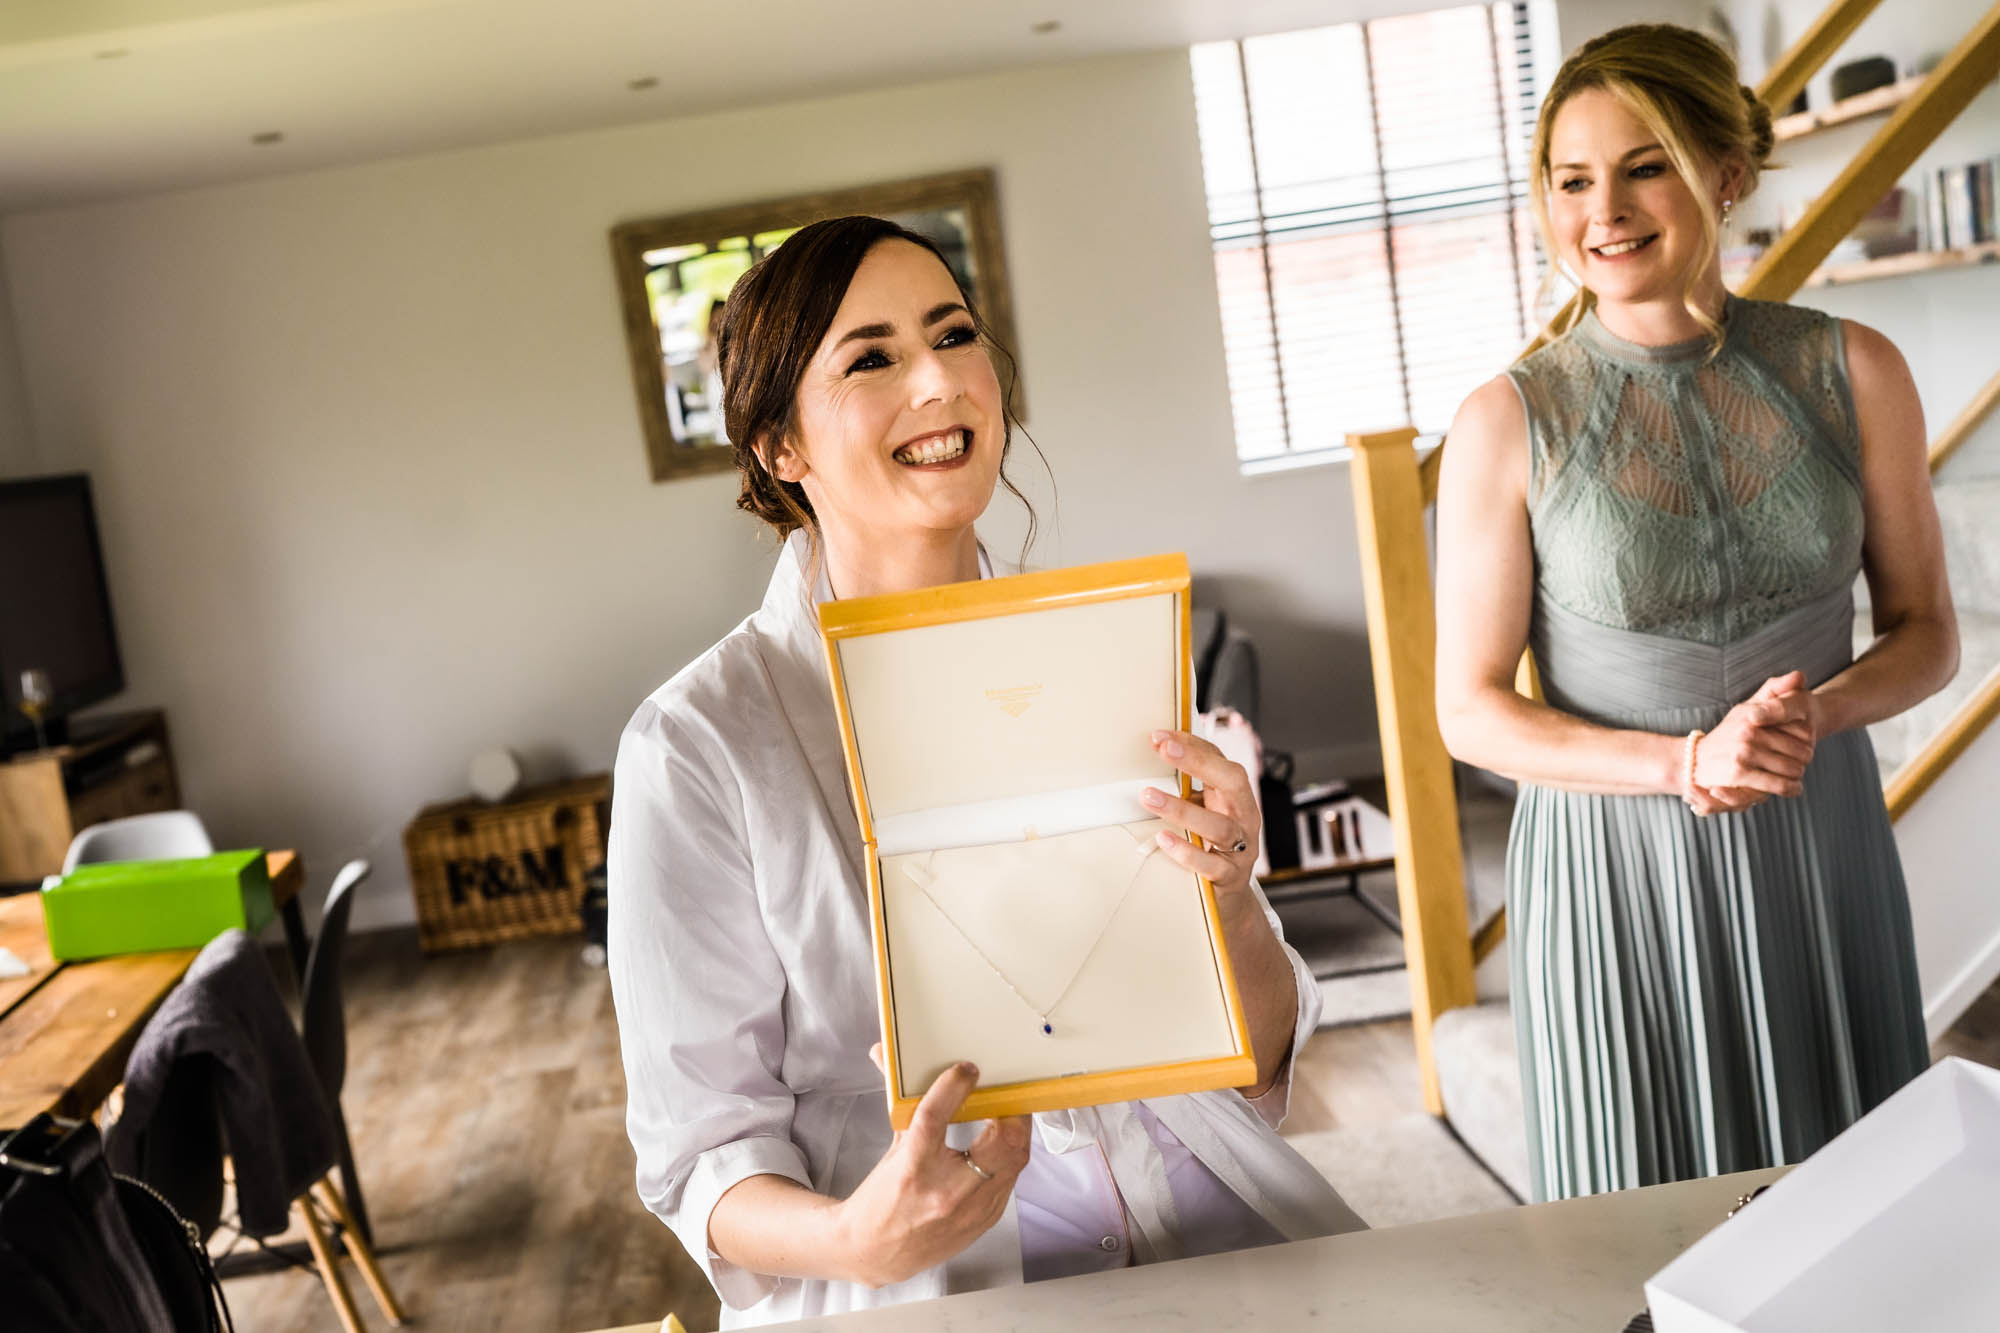 Bride smiling as she opens present